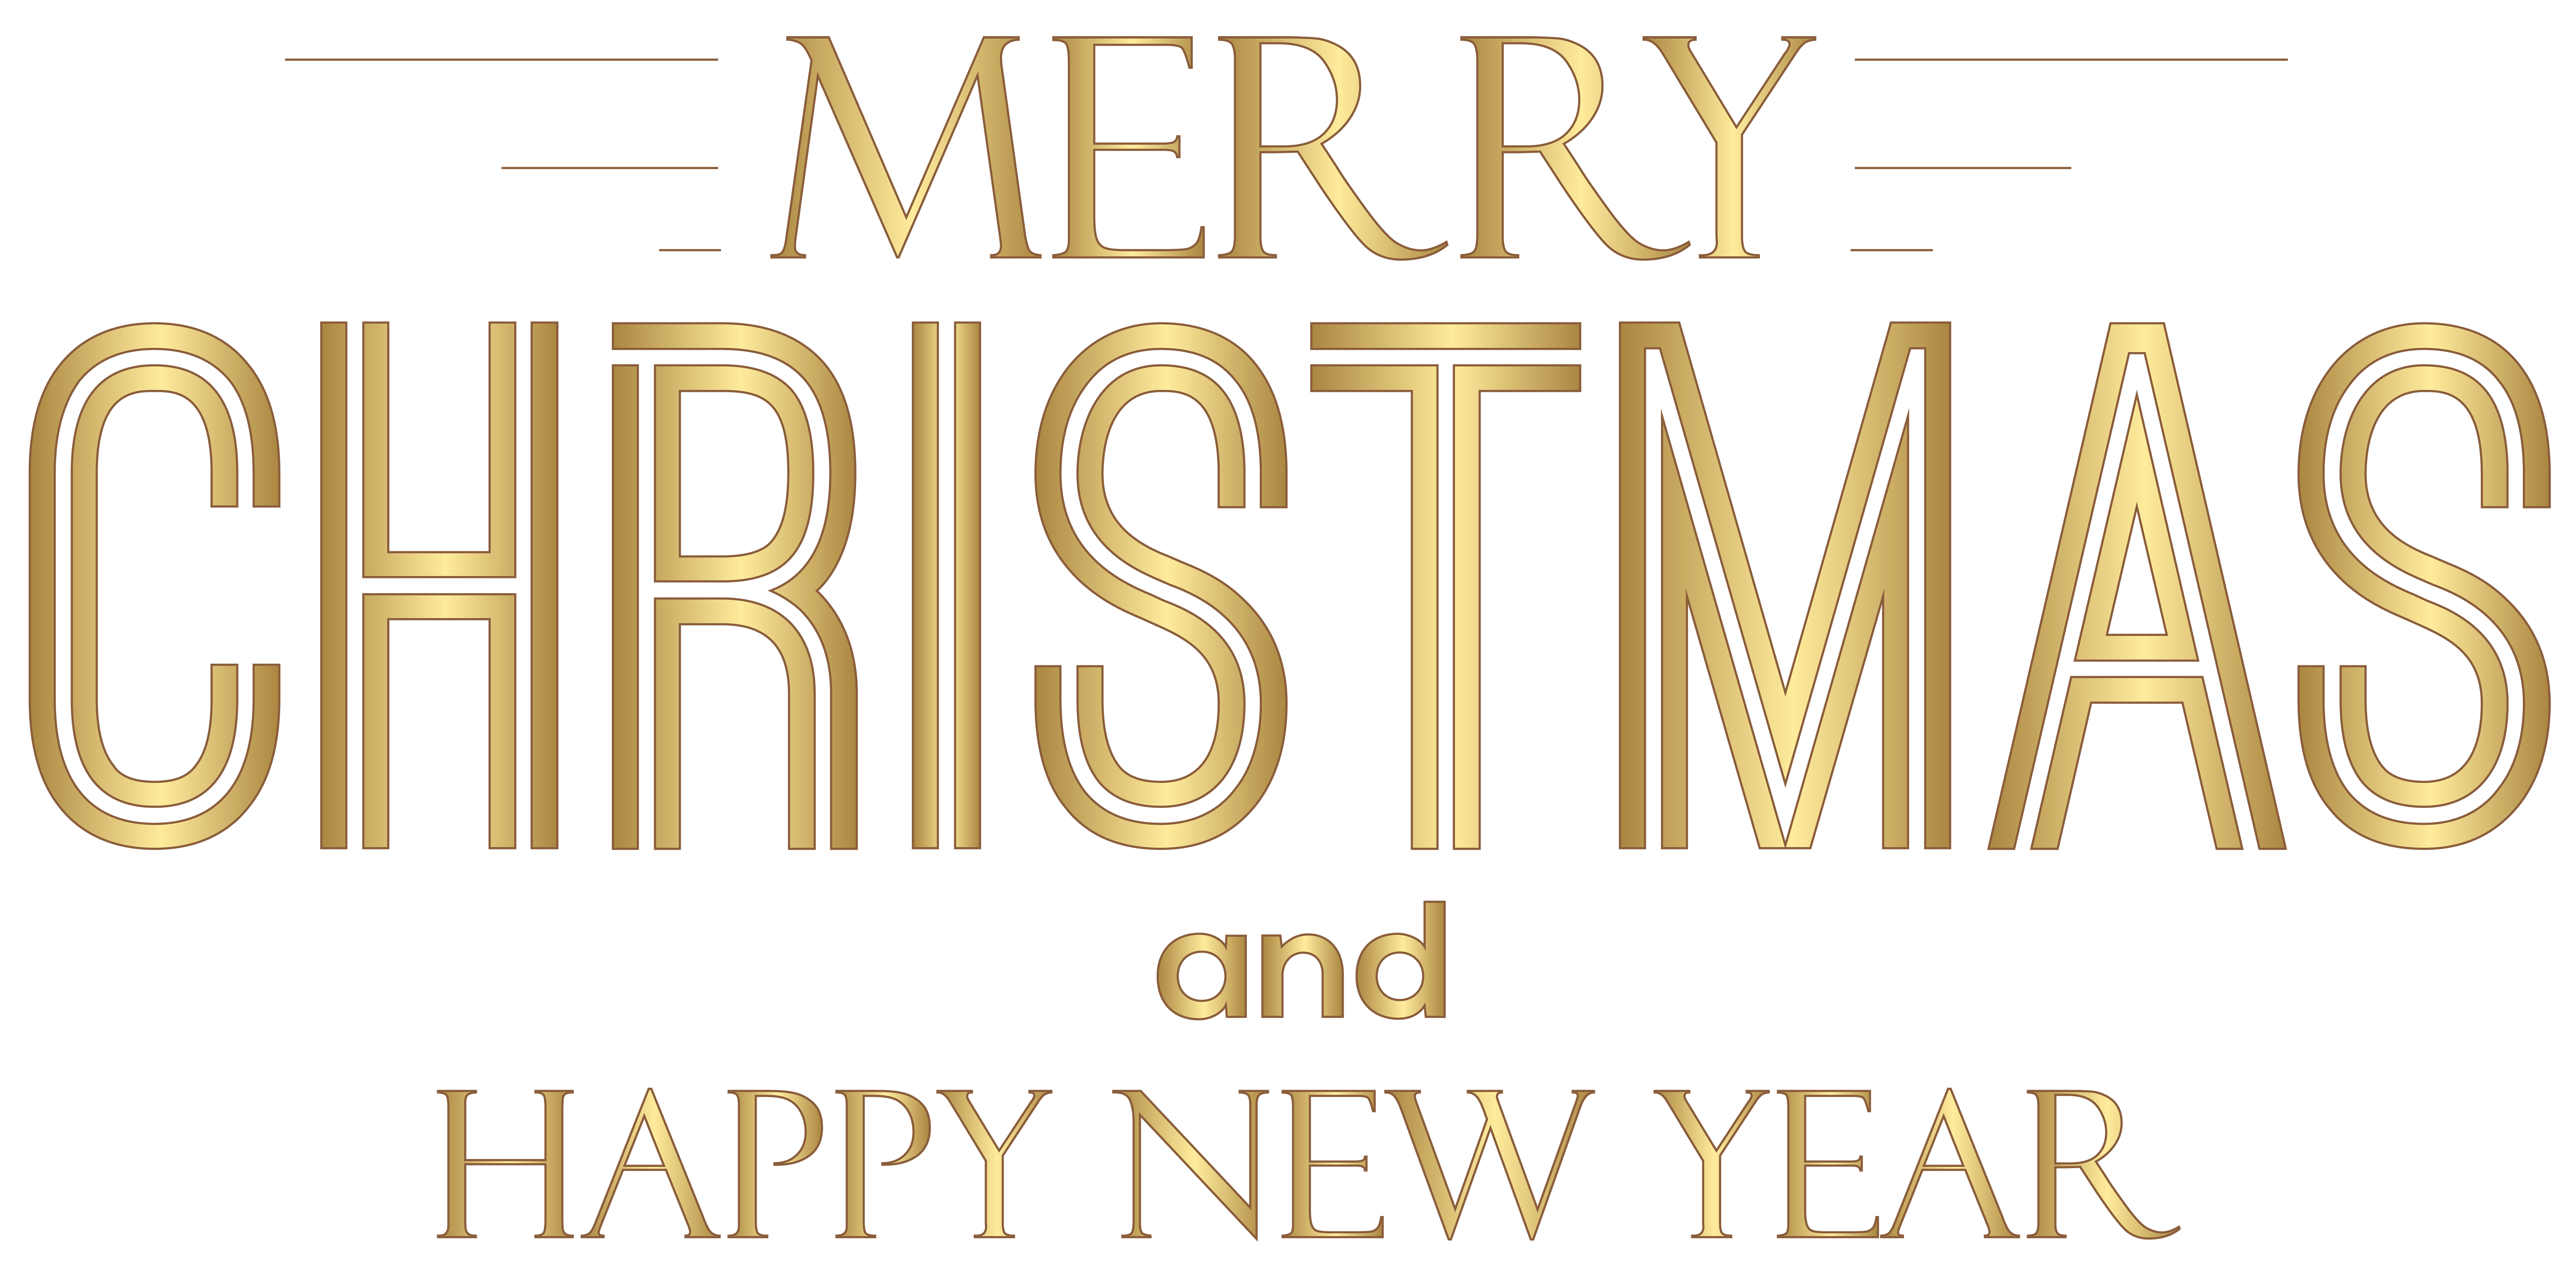 Merry christmas and happy. Free clipart new year